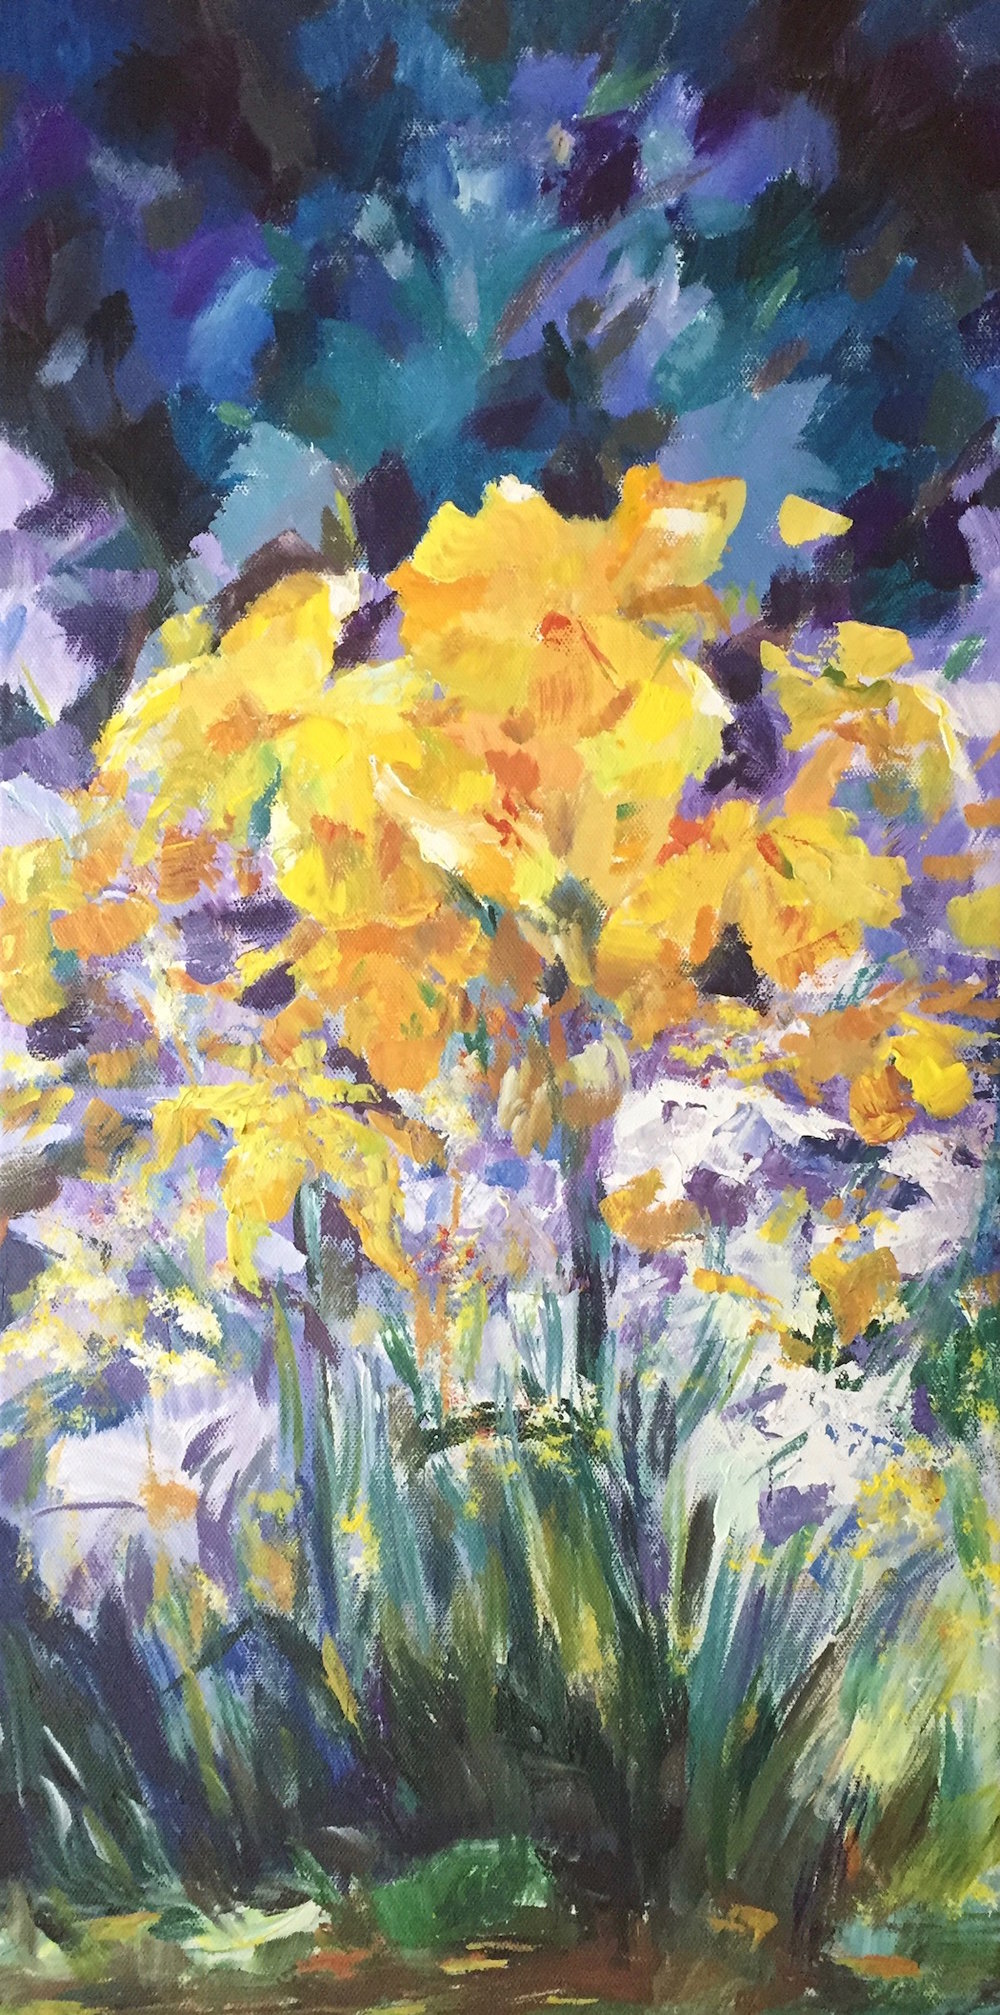 """Spring Garden"" by Cheryl Buhrman, 24x12in, acrylic on canvas (2017), $185 